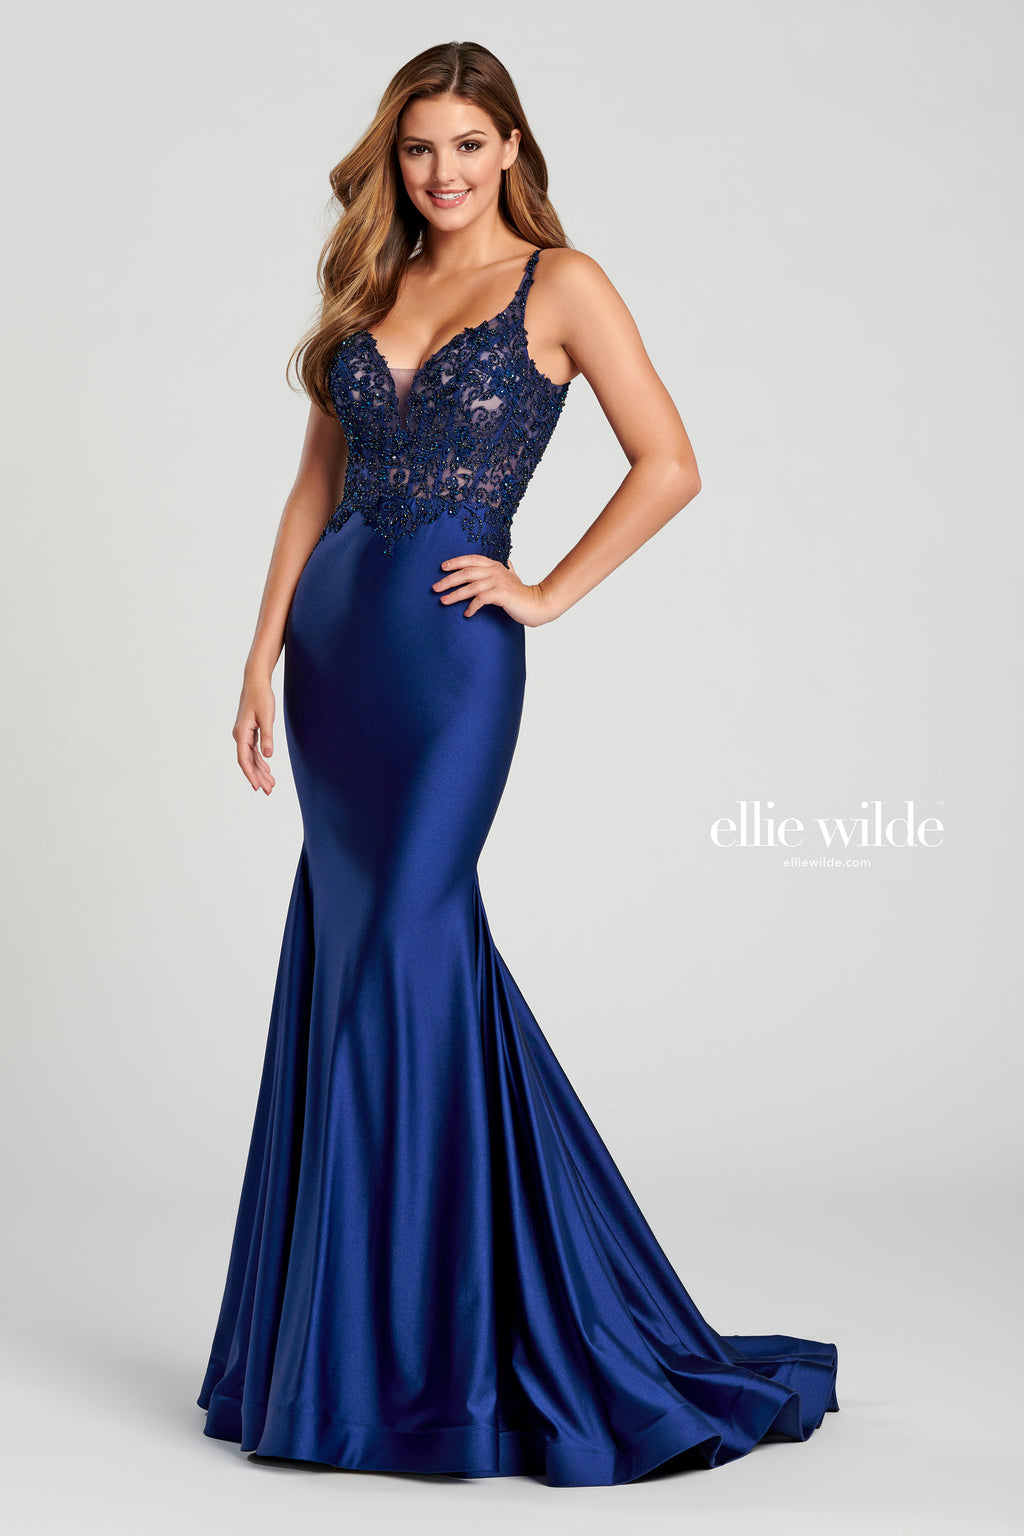 Ellie Wilde Navy Satin Evening Gown - Gissings Boutique